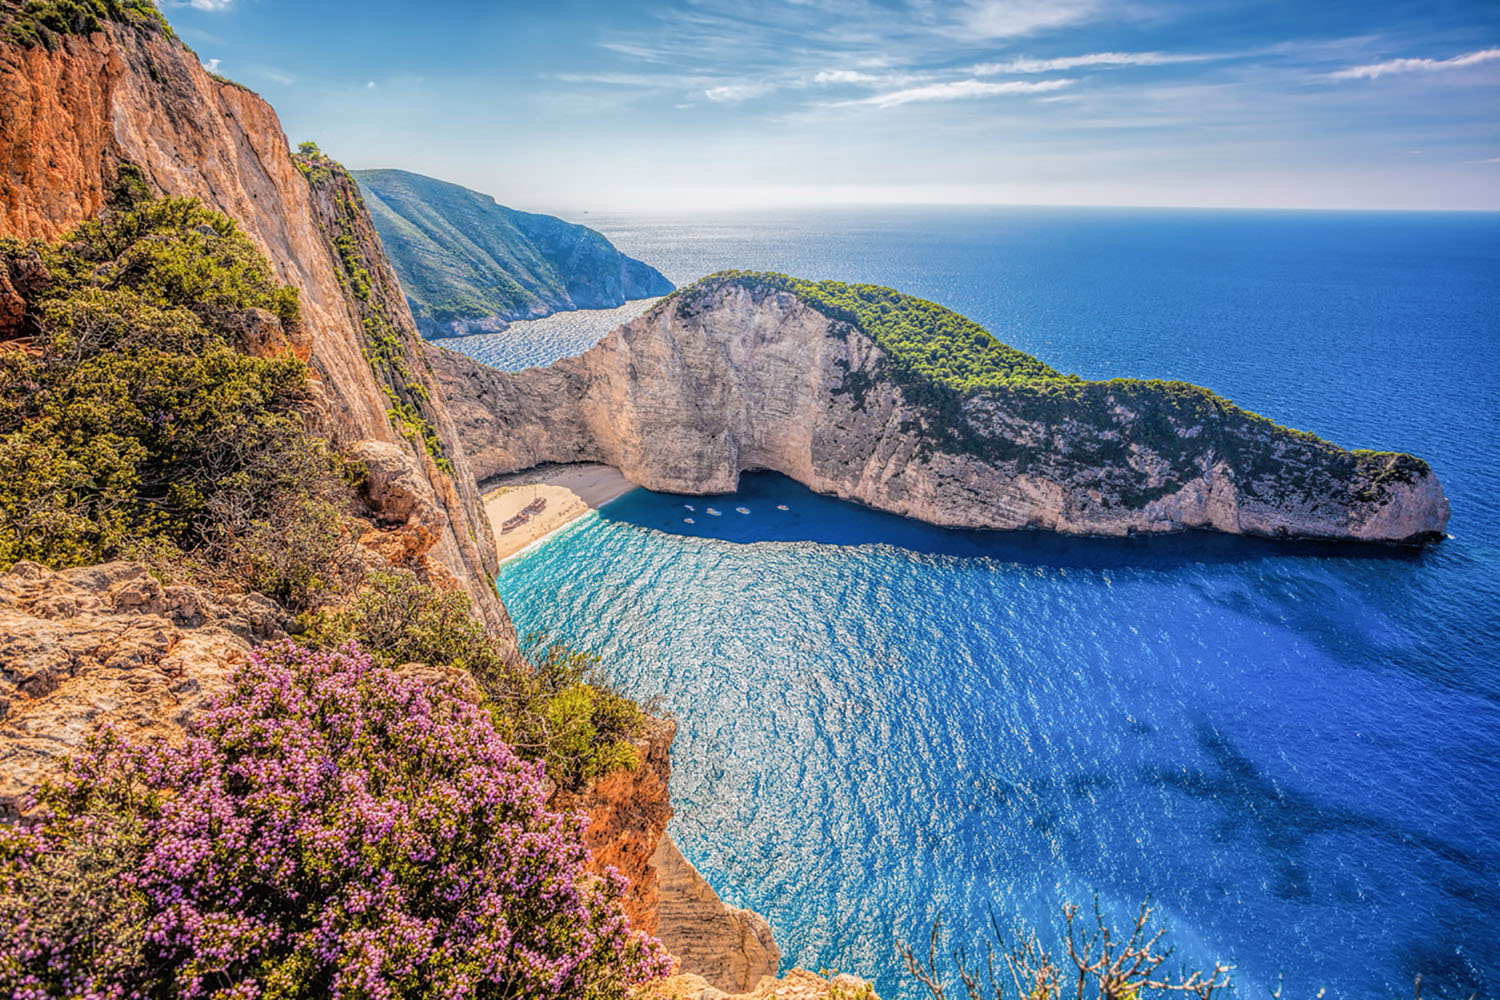 Romantic cruise destinations for couples in the Mediterranean